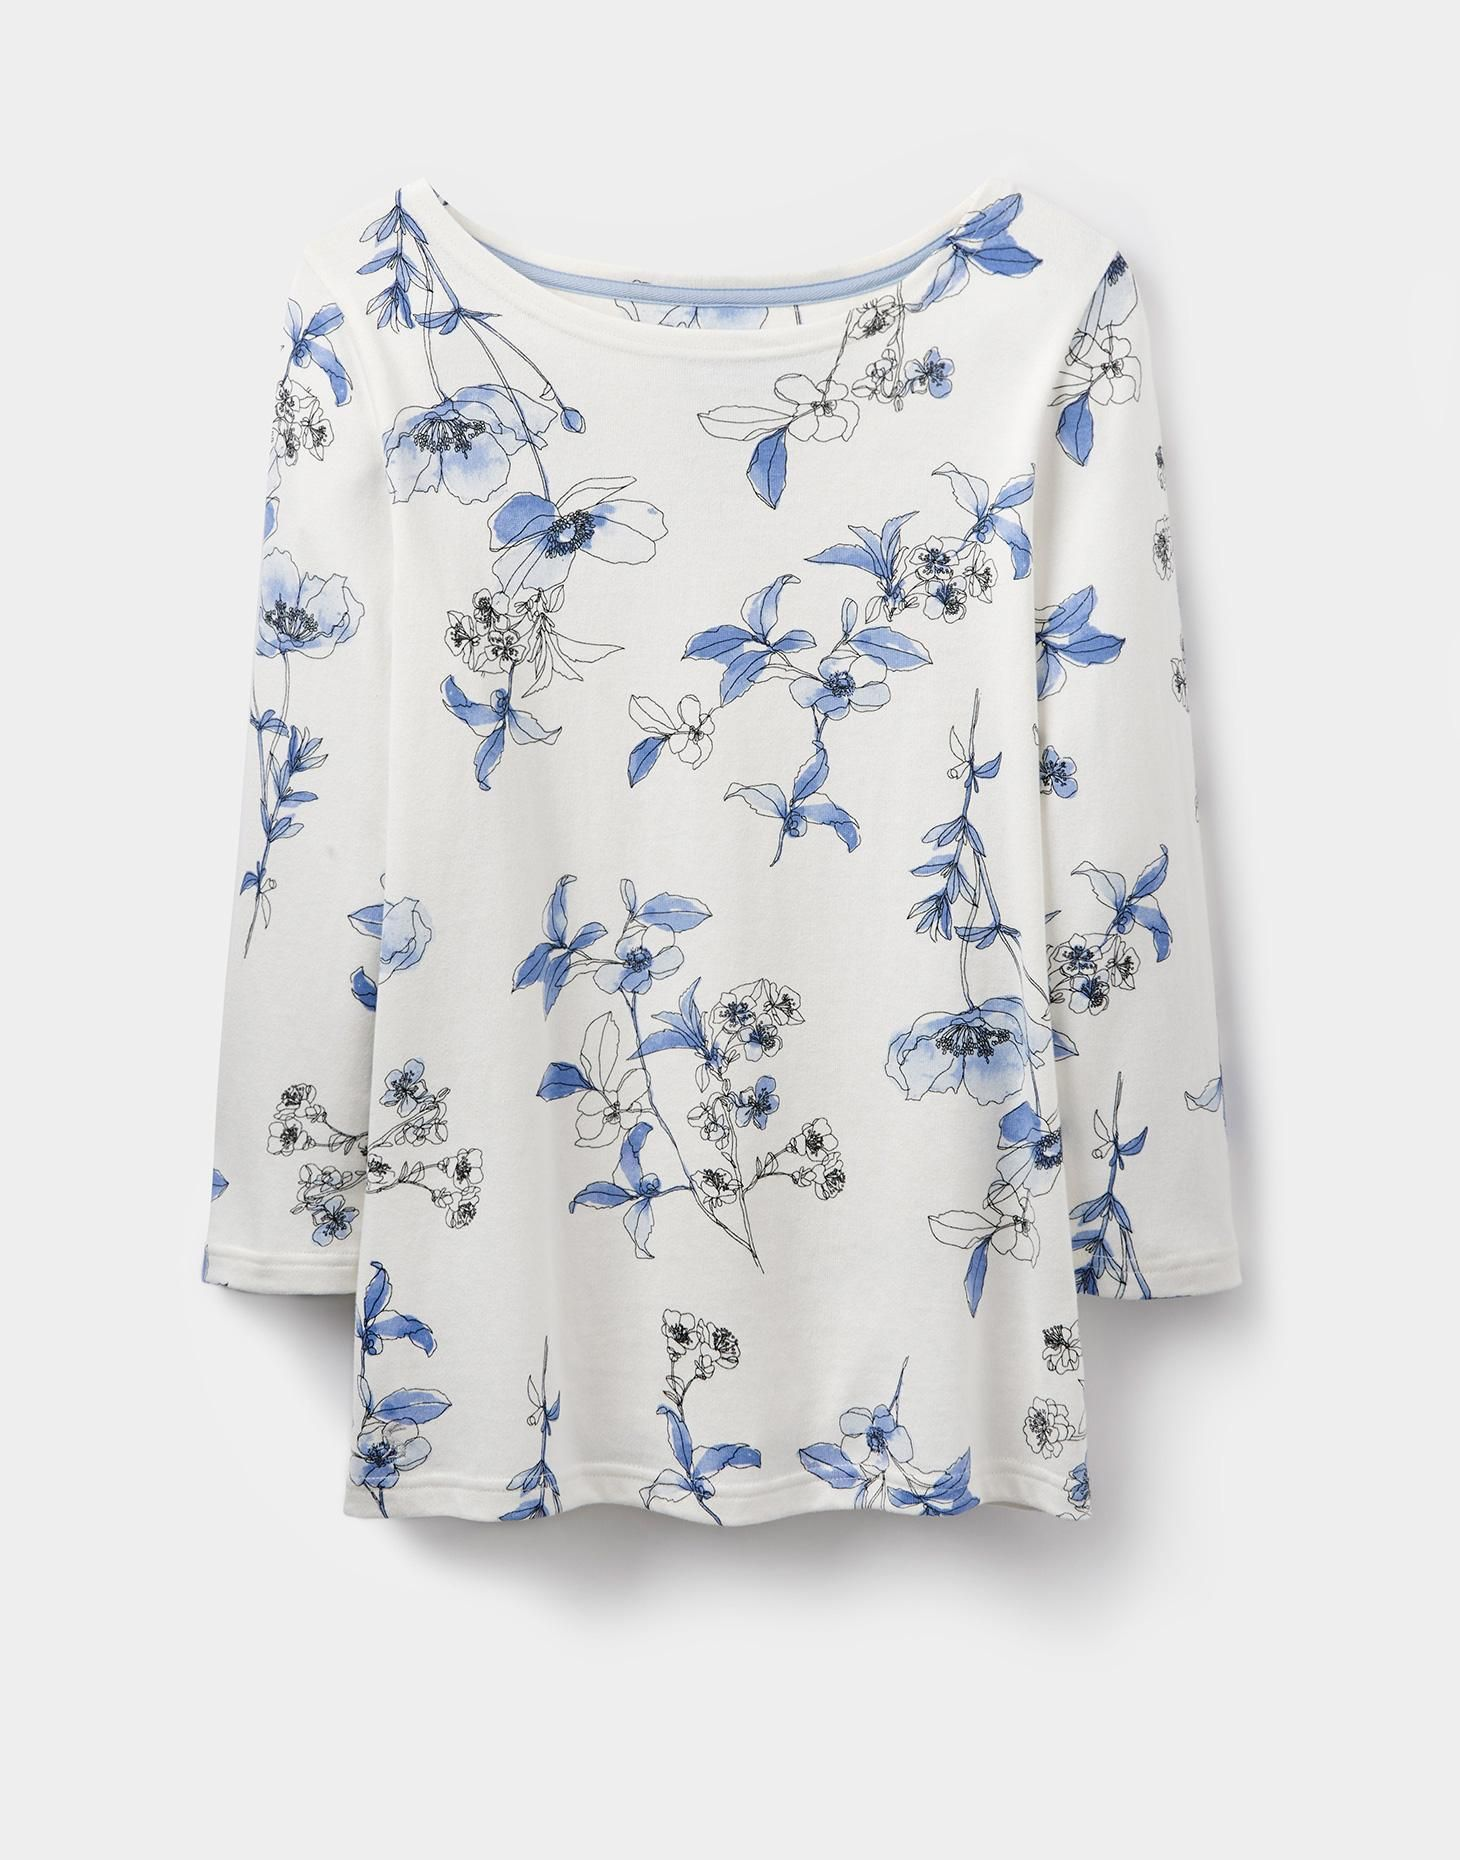 Harbour print Cream Anemone Floral Jersey Top | Joules UK | Wardrobe ...